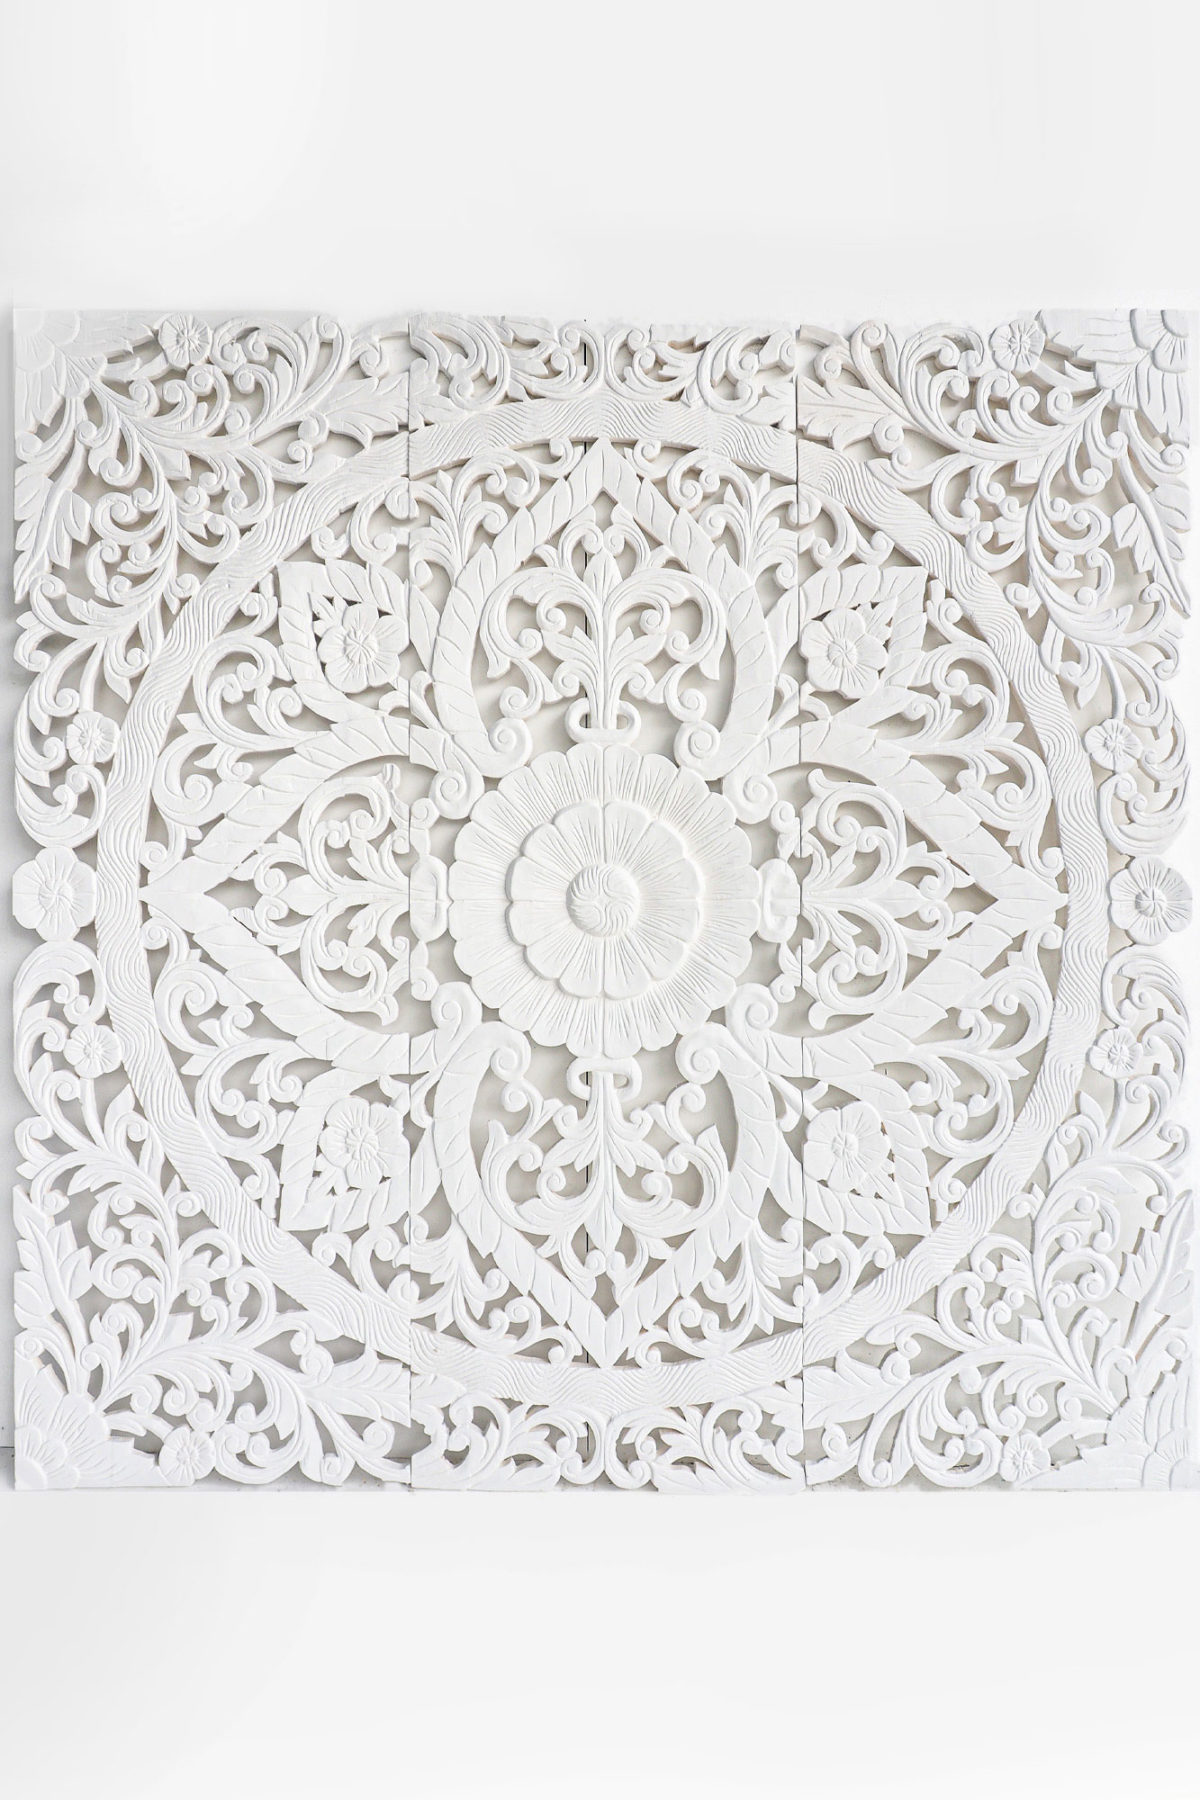 Queen bed headboard beach and coastal home decoration balinese flower design wall mounts panelling 60 inches whitewashed finish